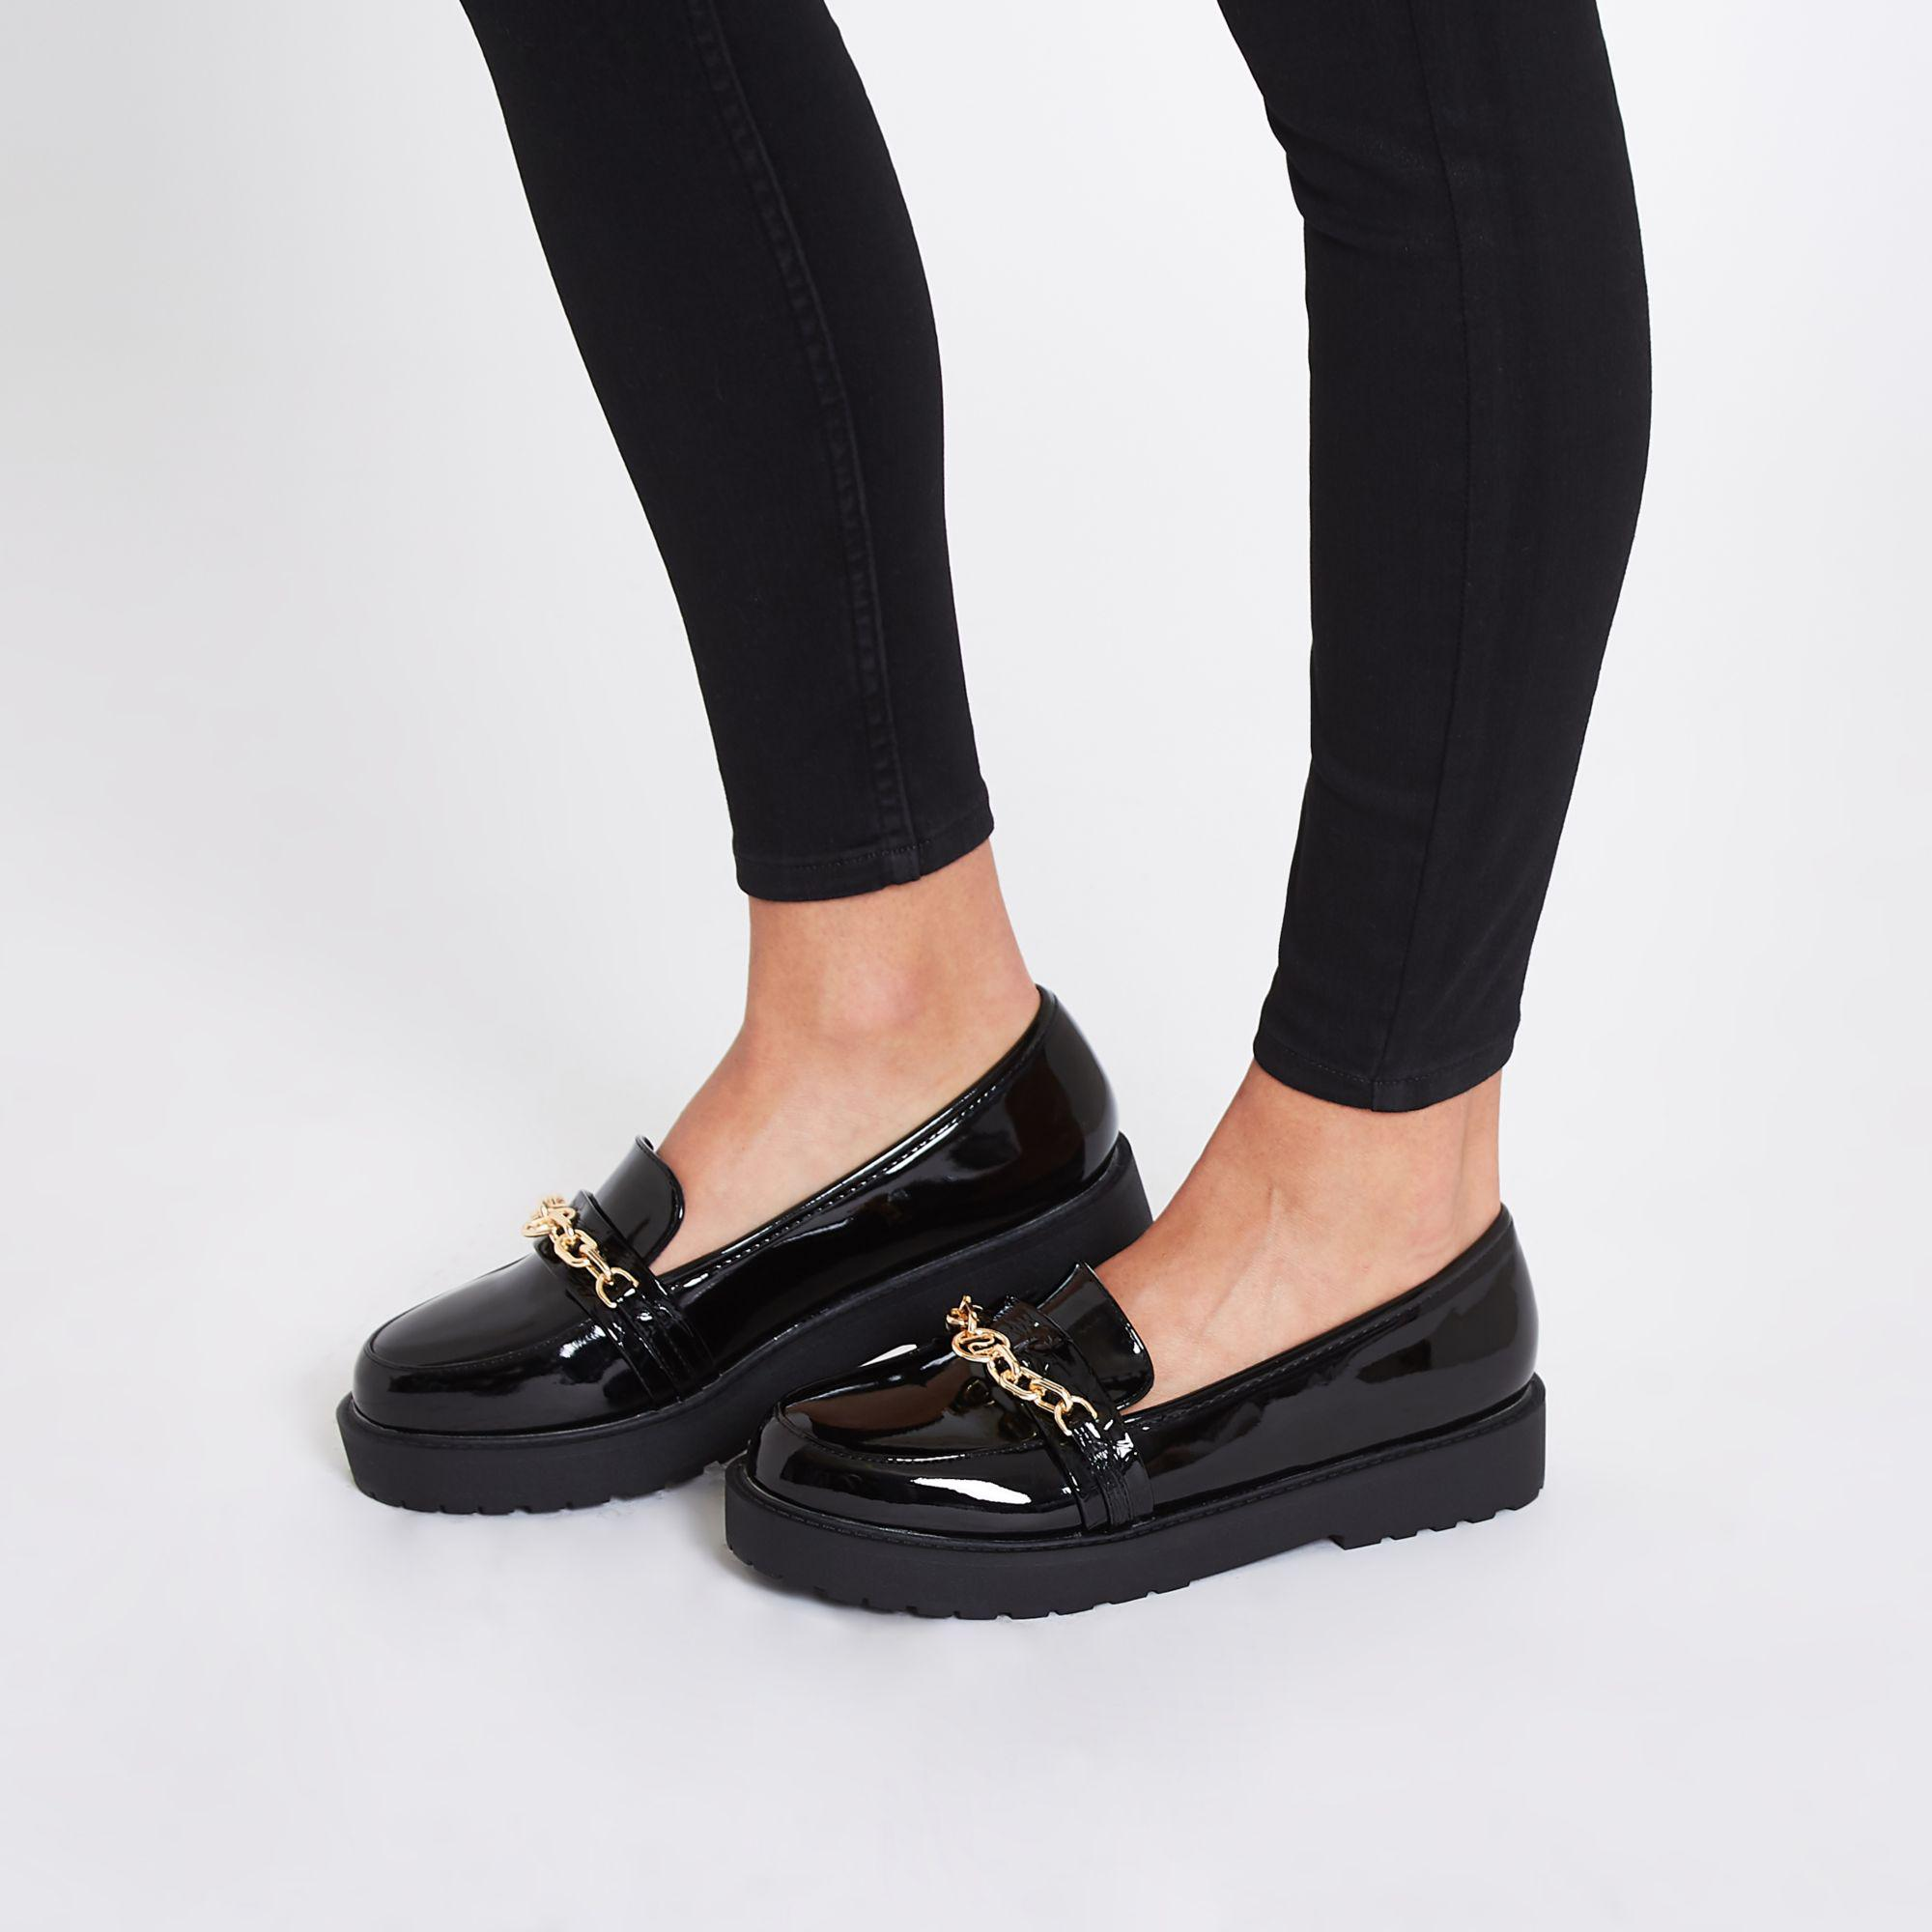 a7a869e39 River Island Chunky Flatform Loafers With Chain Detail In Black in ...